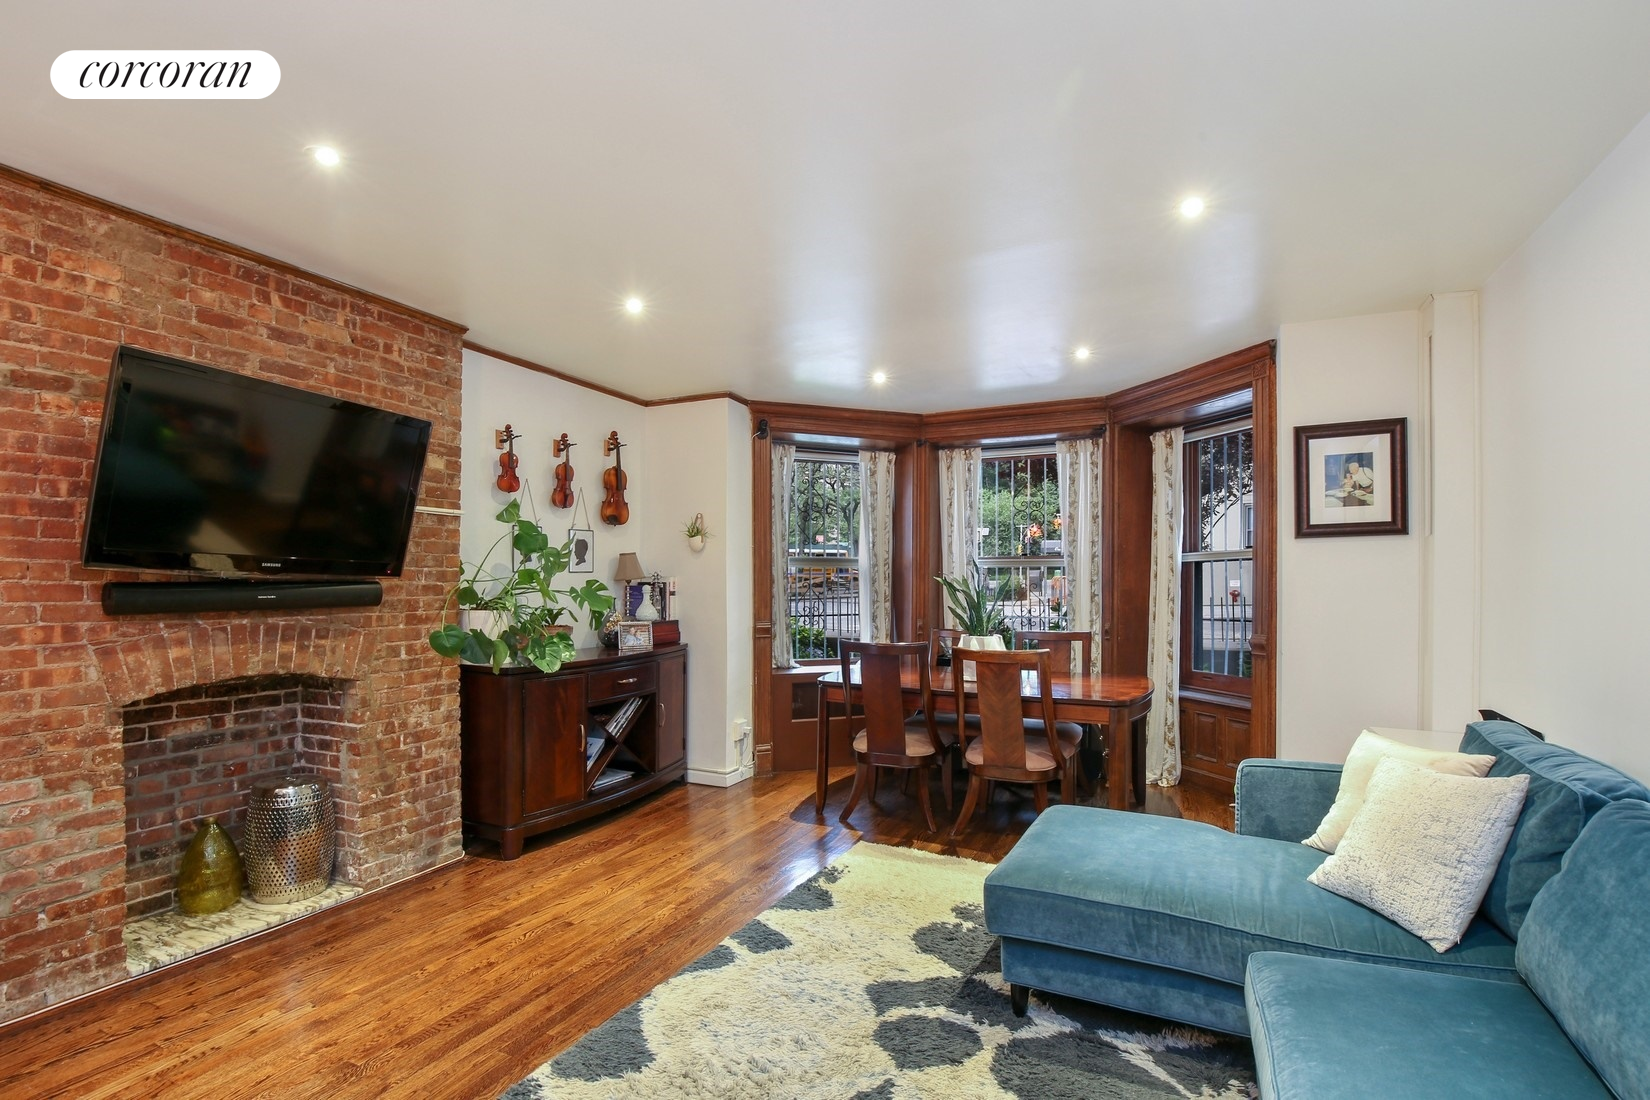 8 8th Avenue, A, Living Room